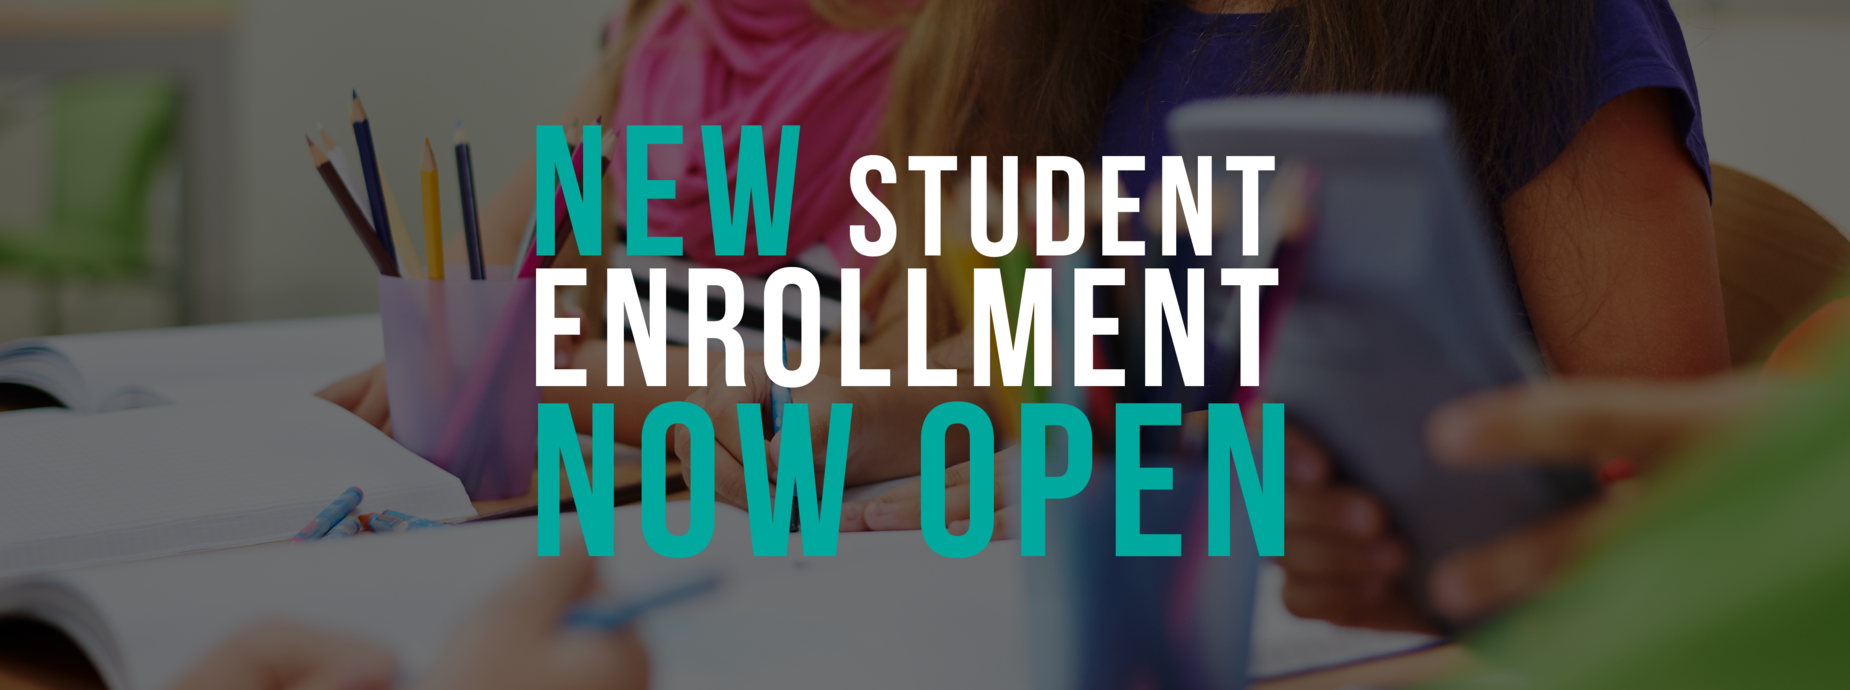 New Student Enrollment Now Open